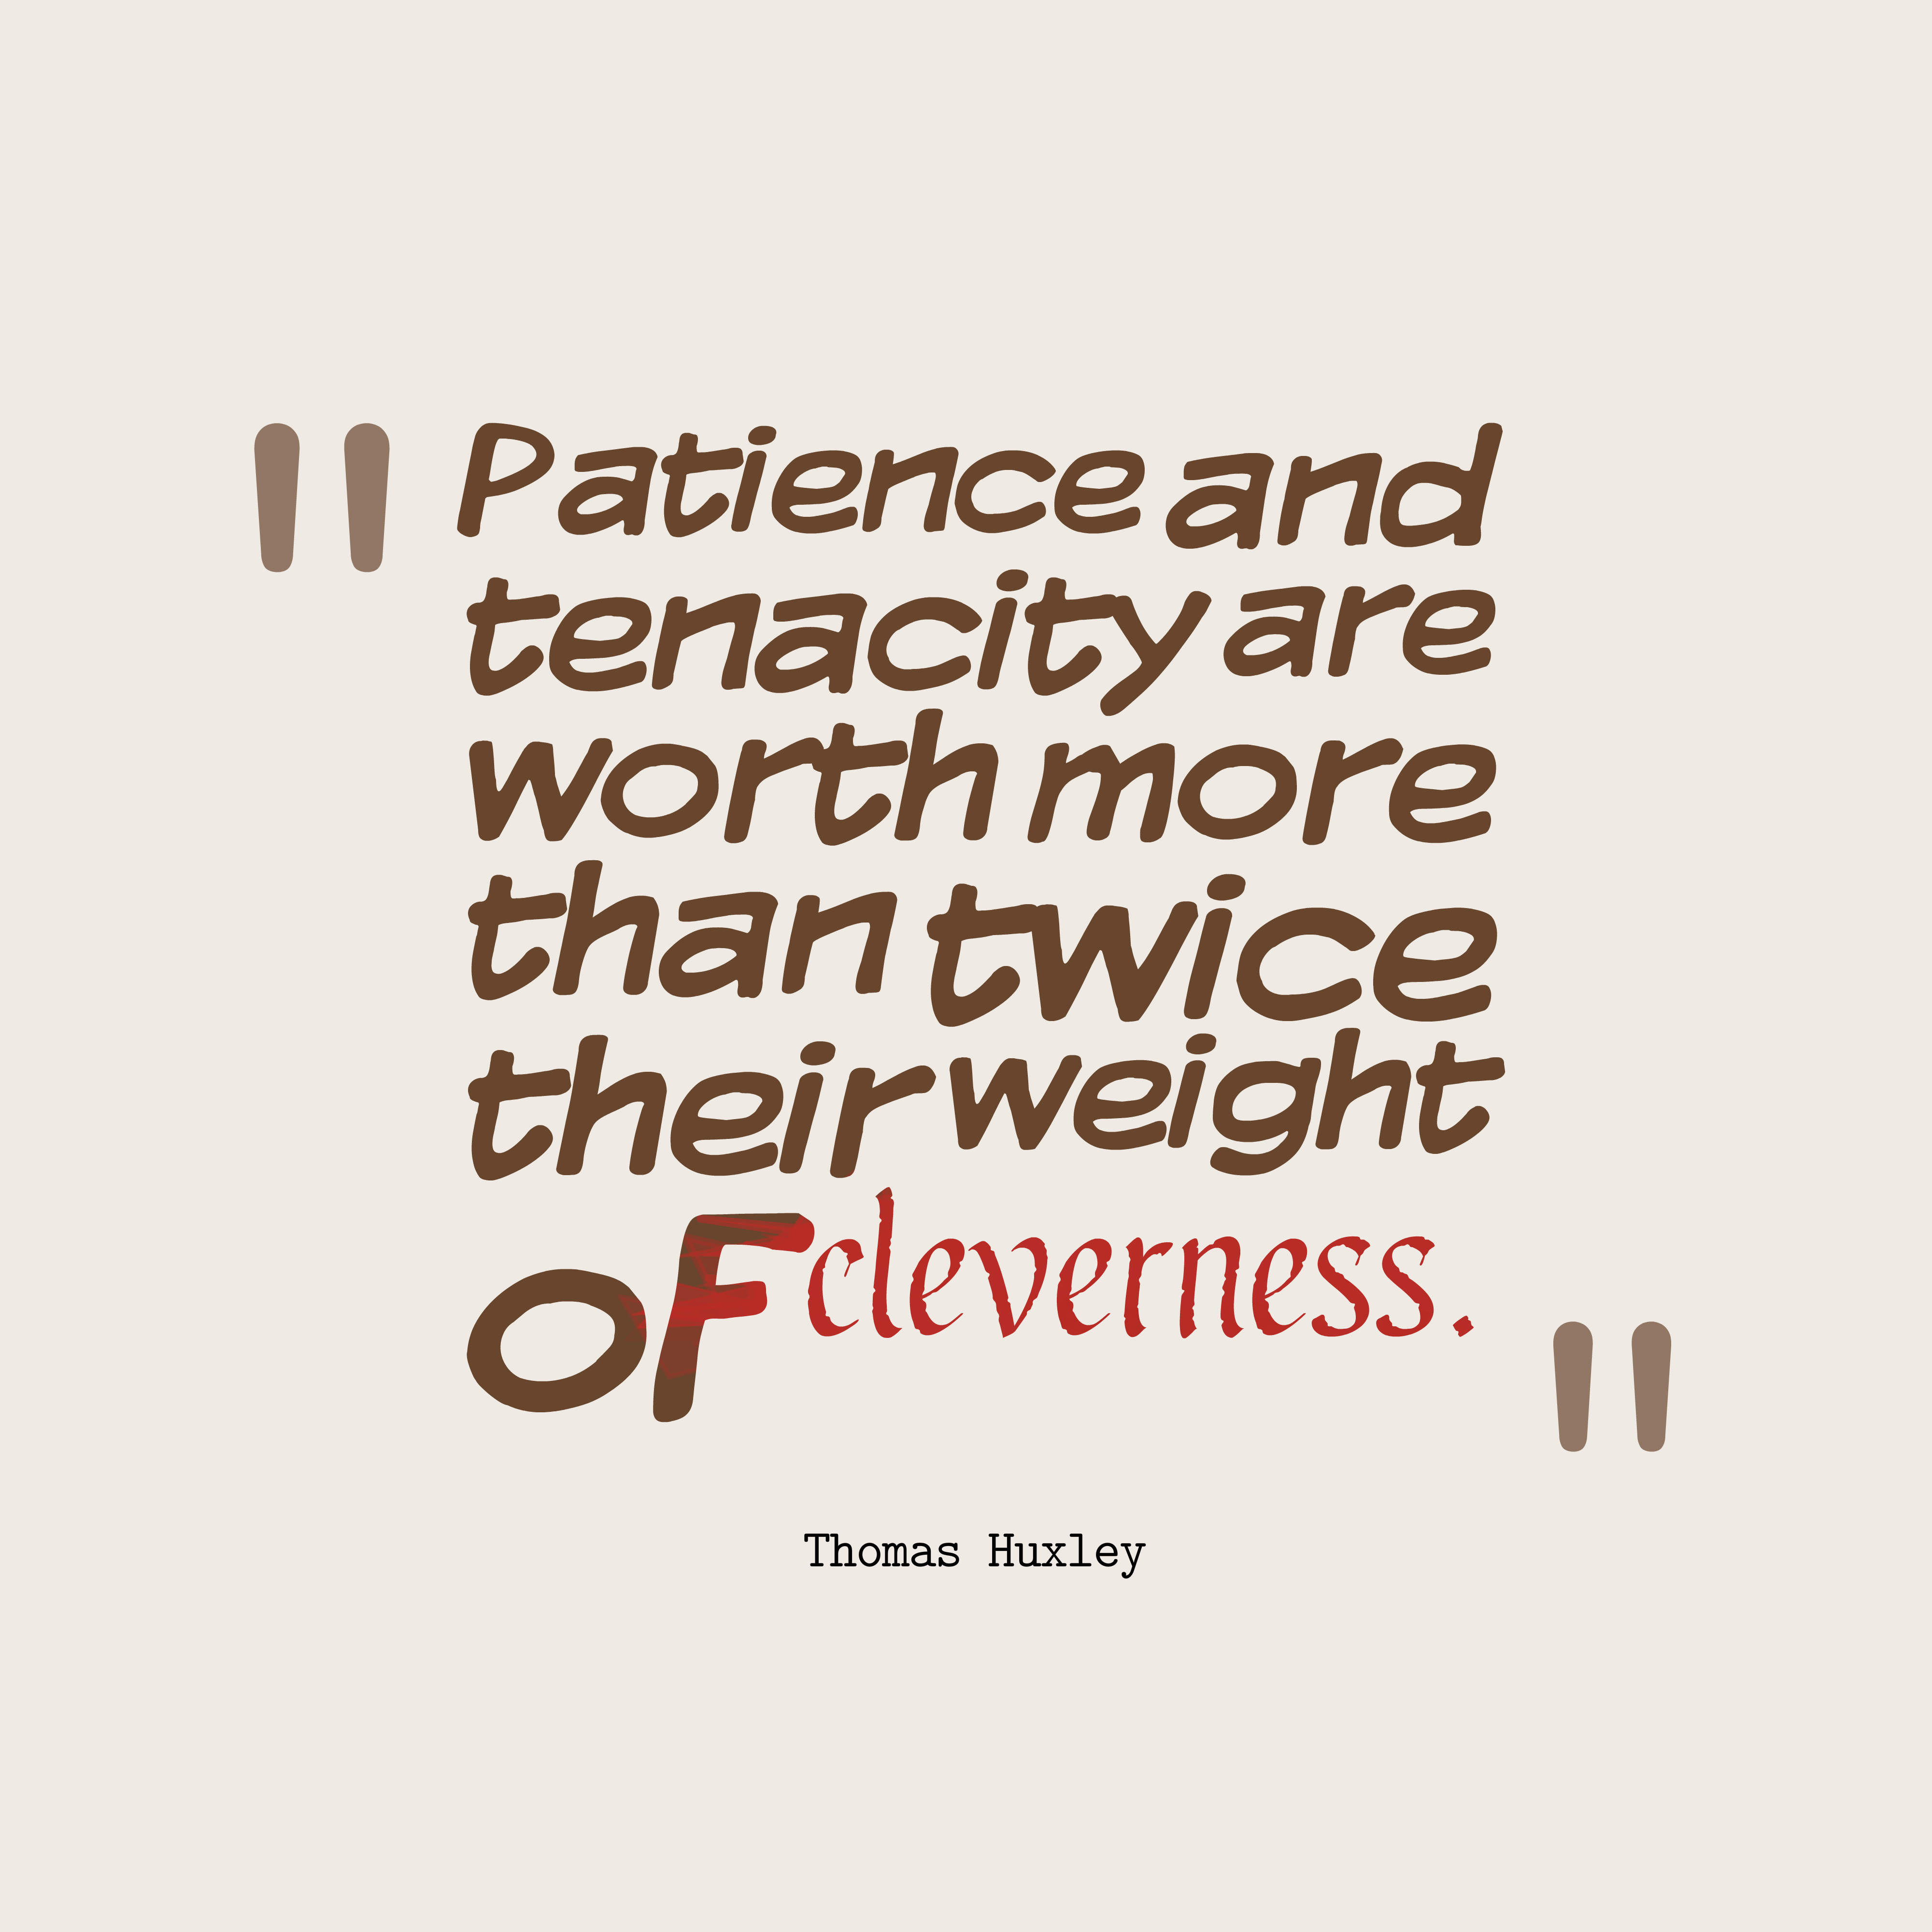 Make Own Quote Wallpaper Picture 187 Thomas Huxley Quote About Patience